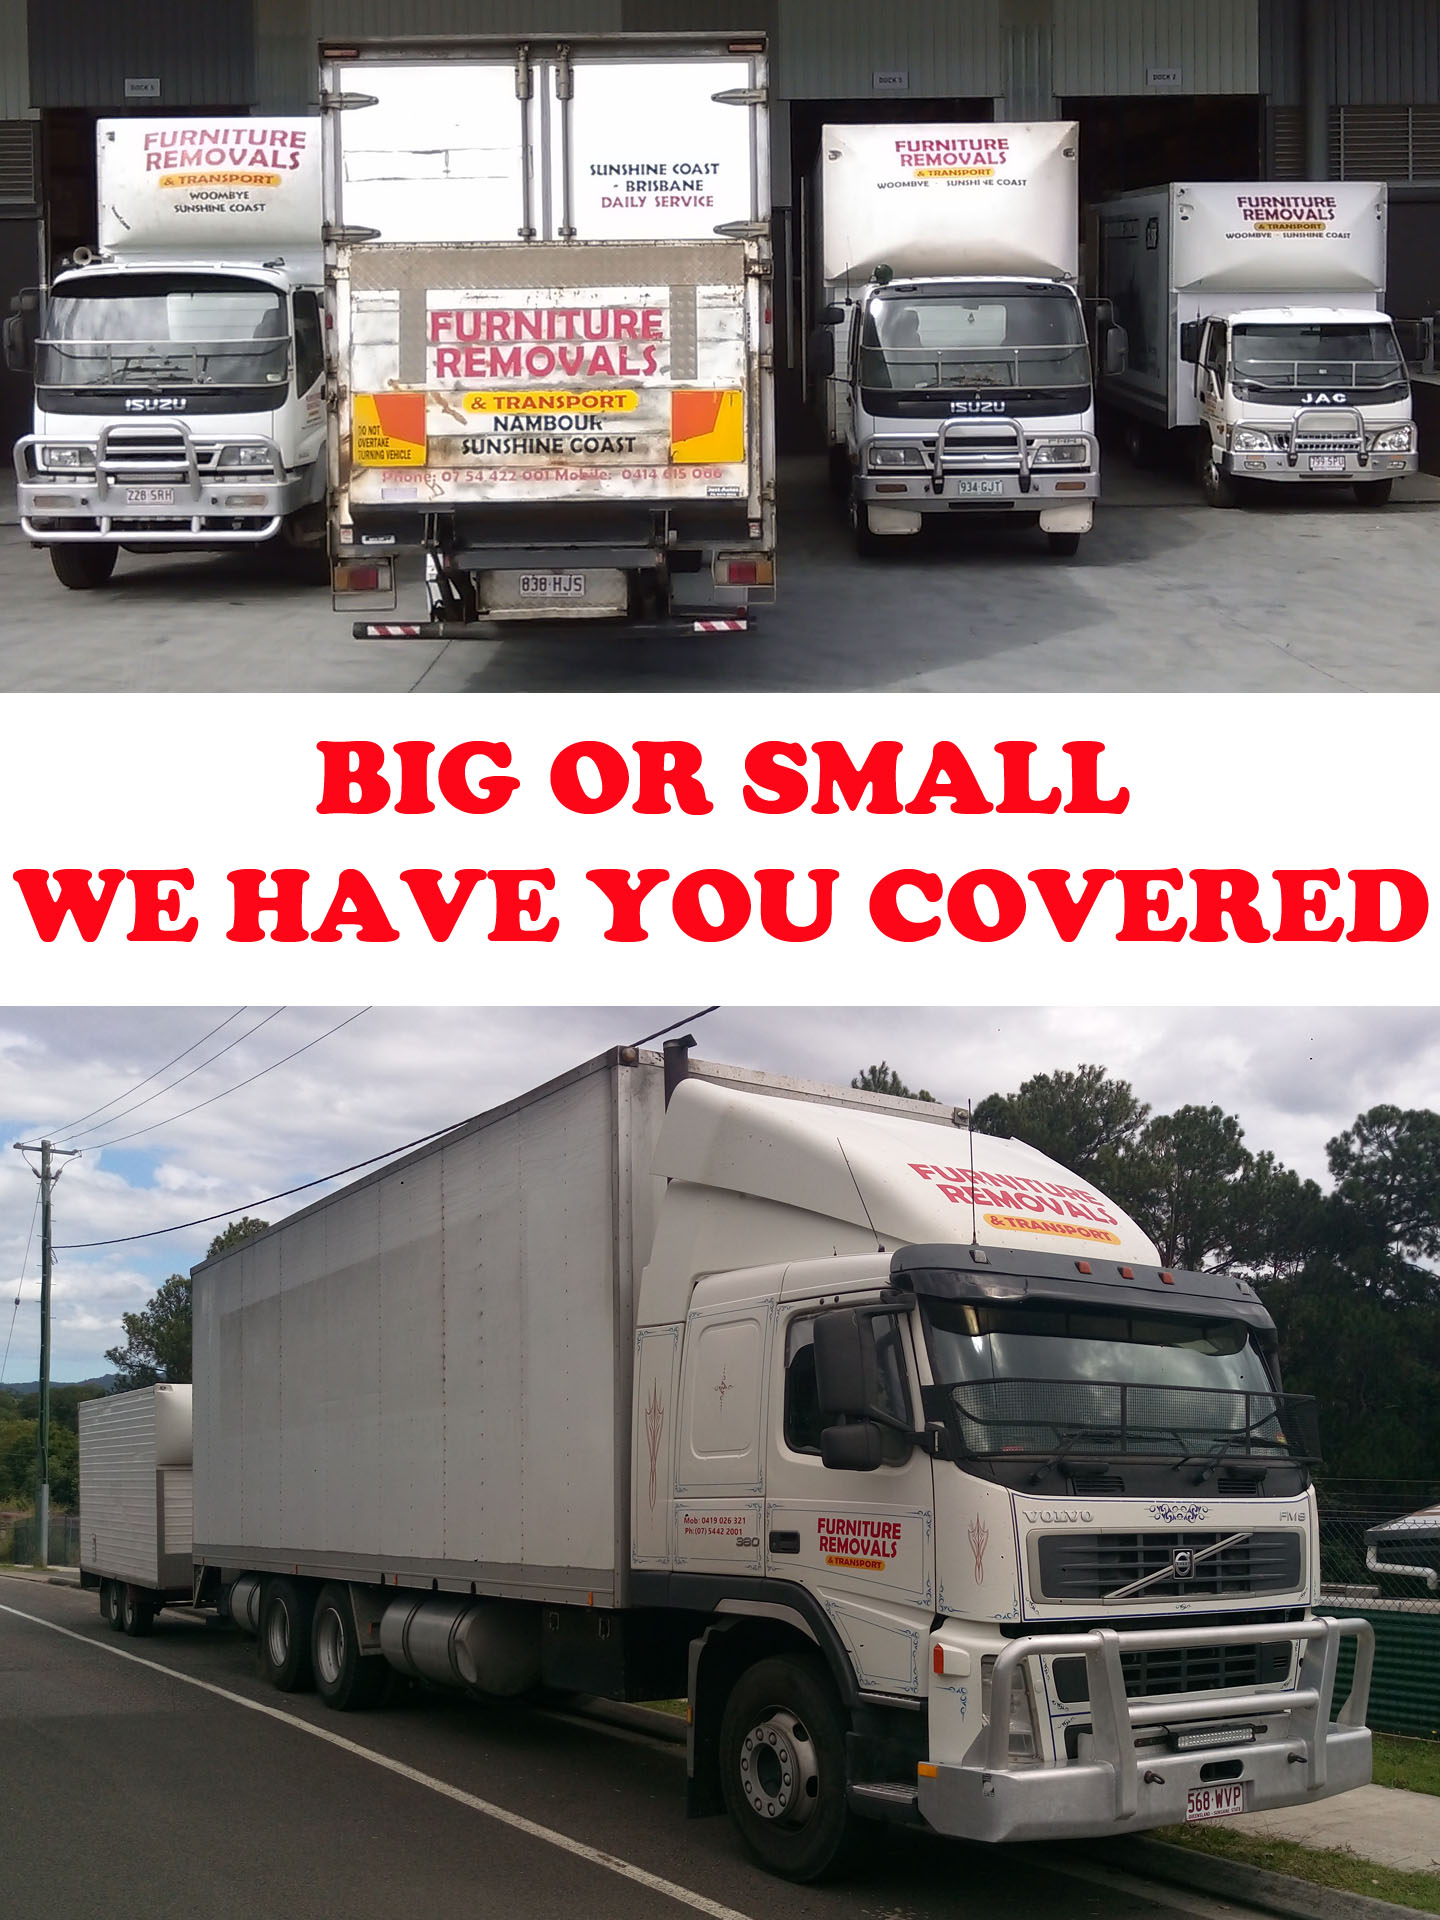 sunshine coast removals fleet